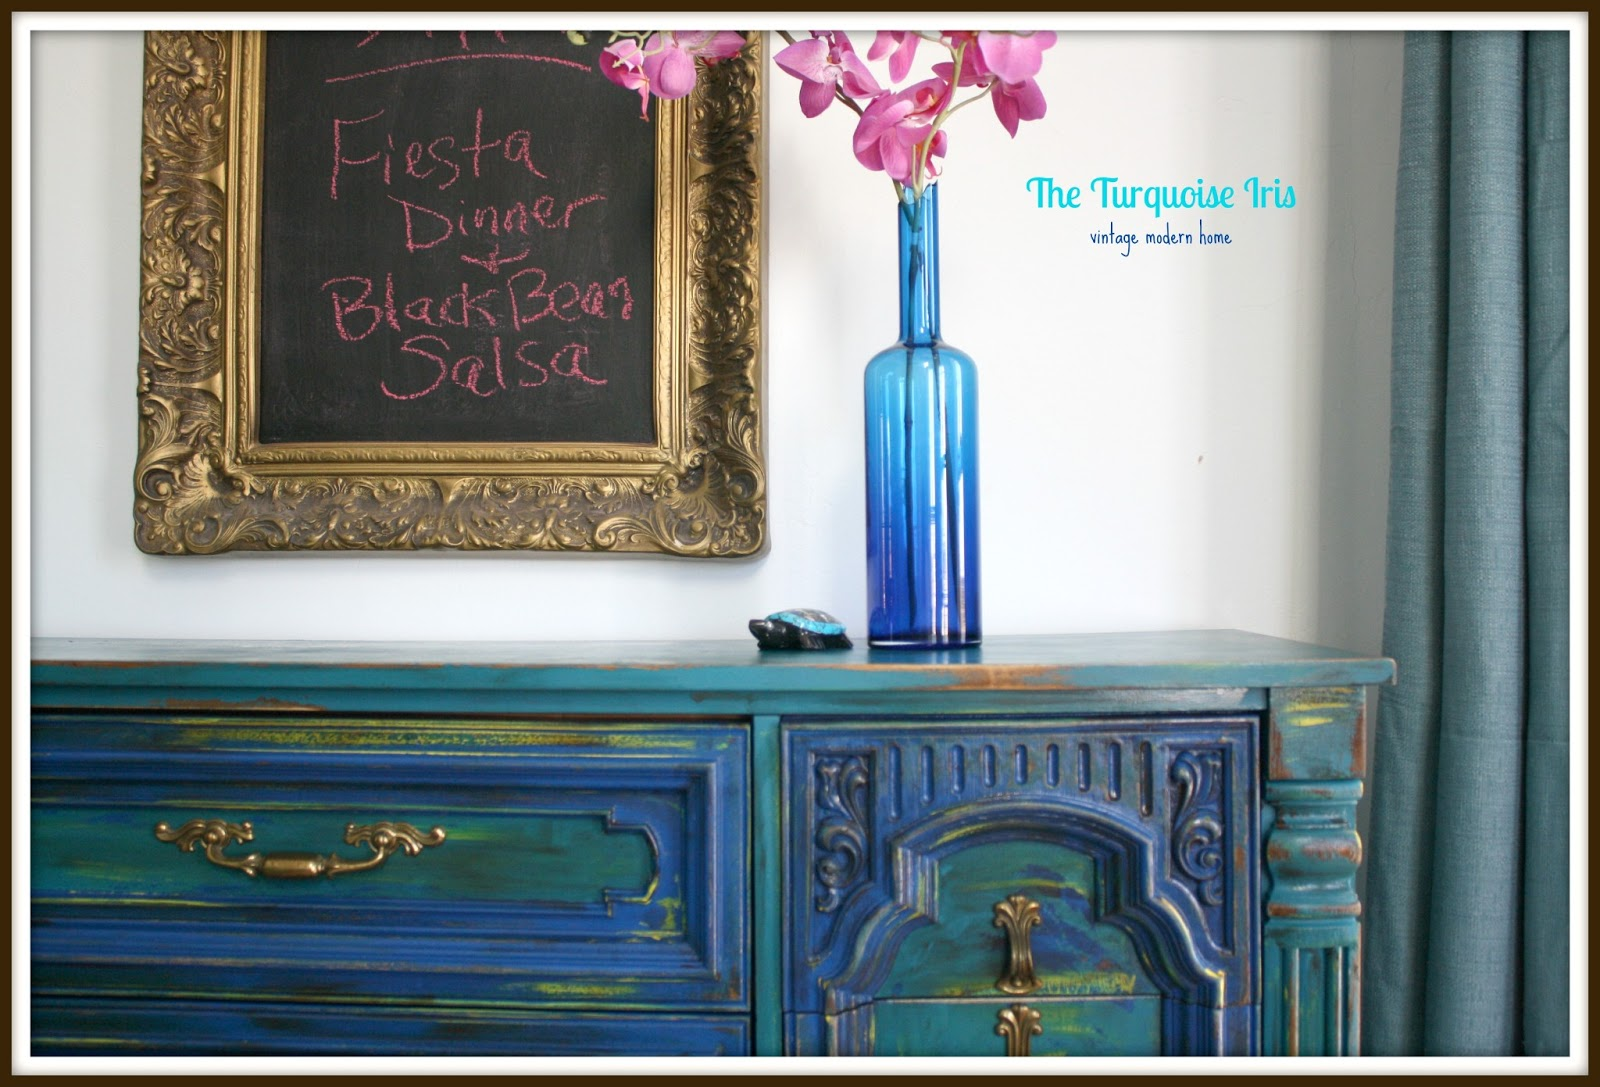 The Turquoise Iris ~ Furniture & Art: Teal and Cobalt Blue ...